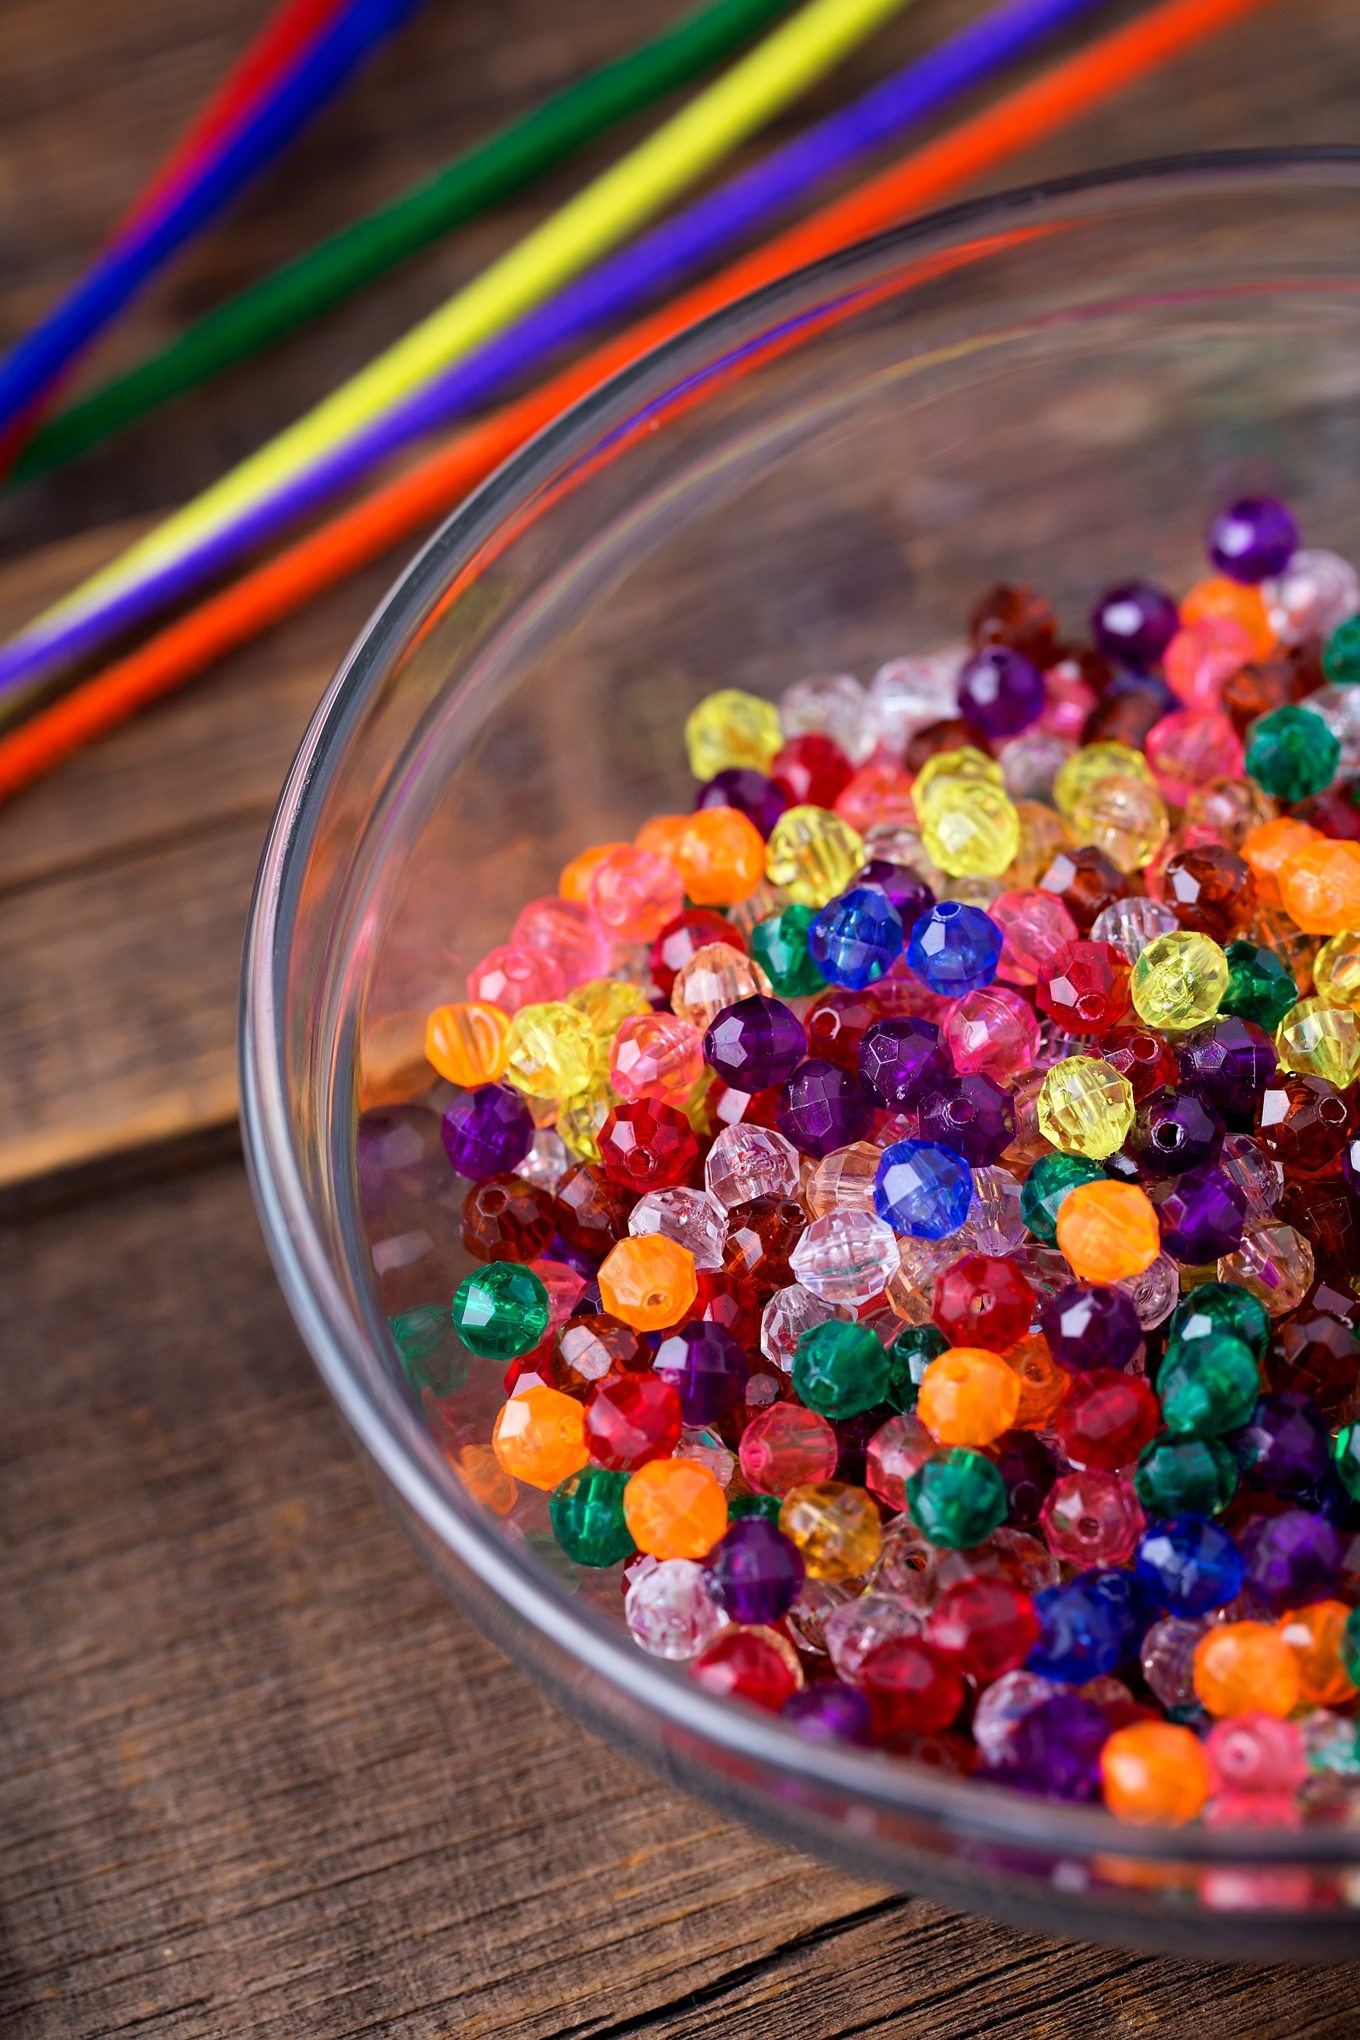 Materials Needed for Beaded Rainbow Suncatchers